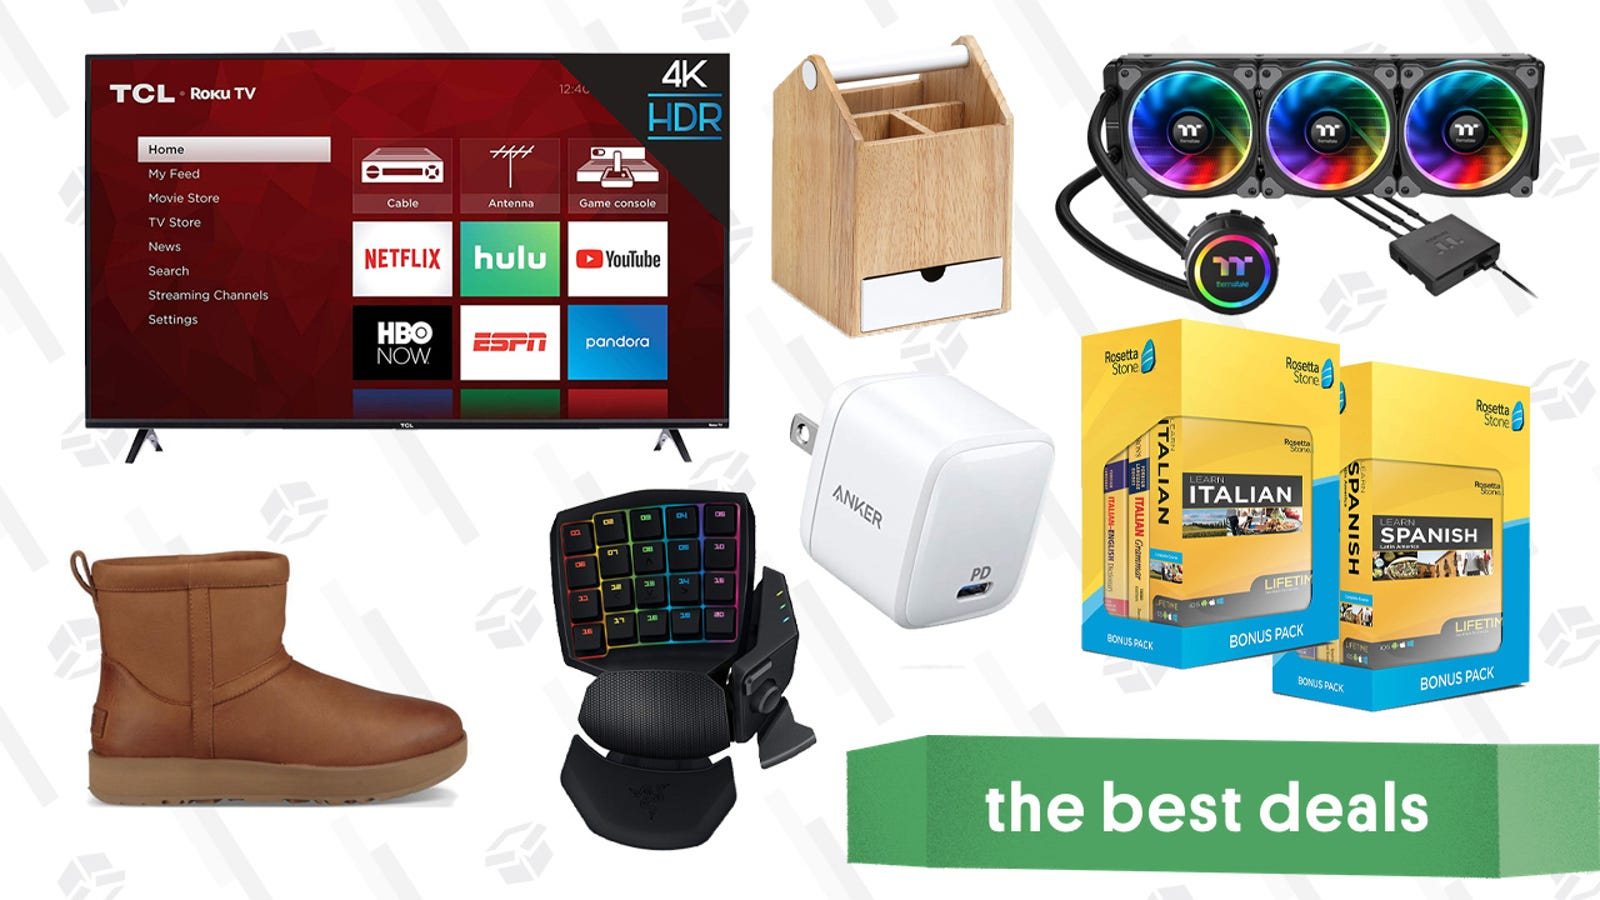 Tuesday's Best Deals: Intel Gamer Deals, Menlo Club, UGG Boots, and More